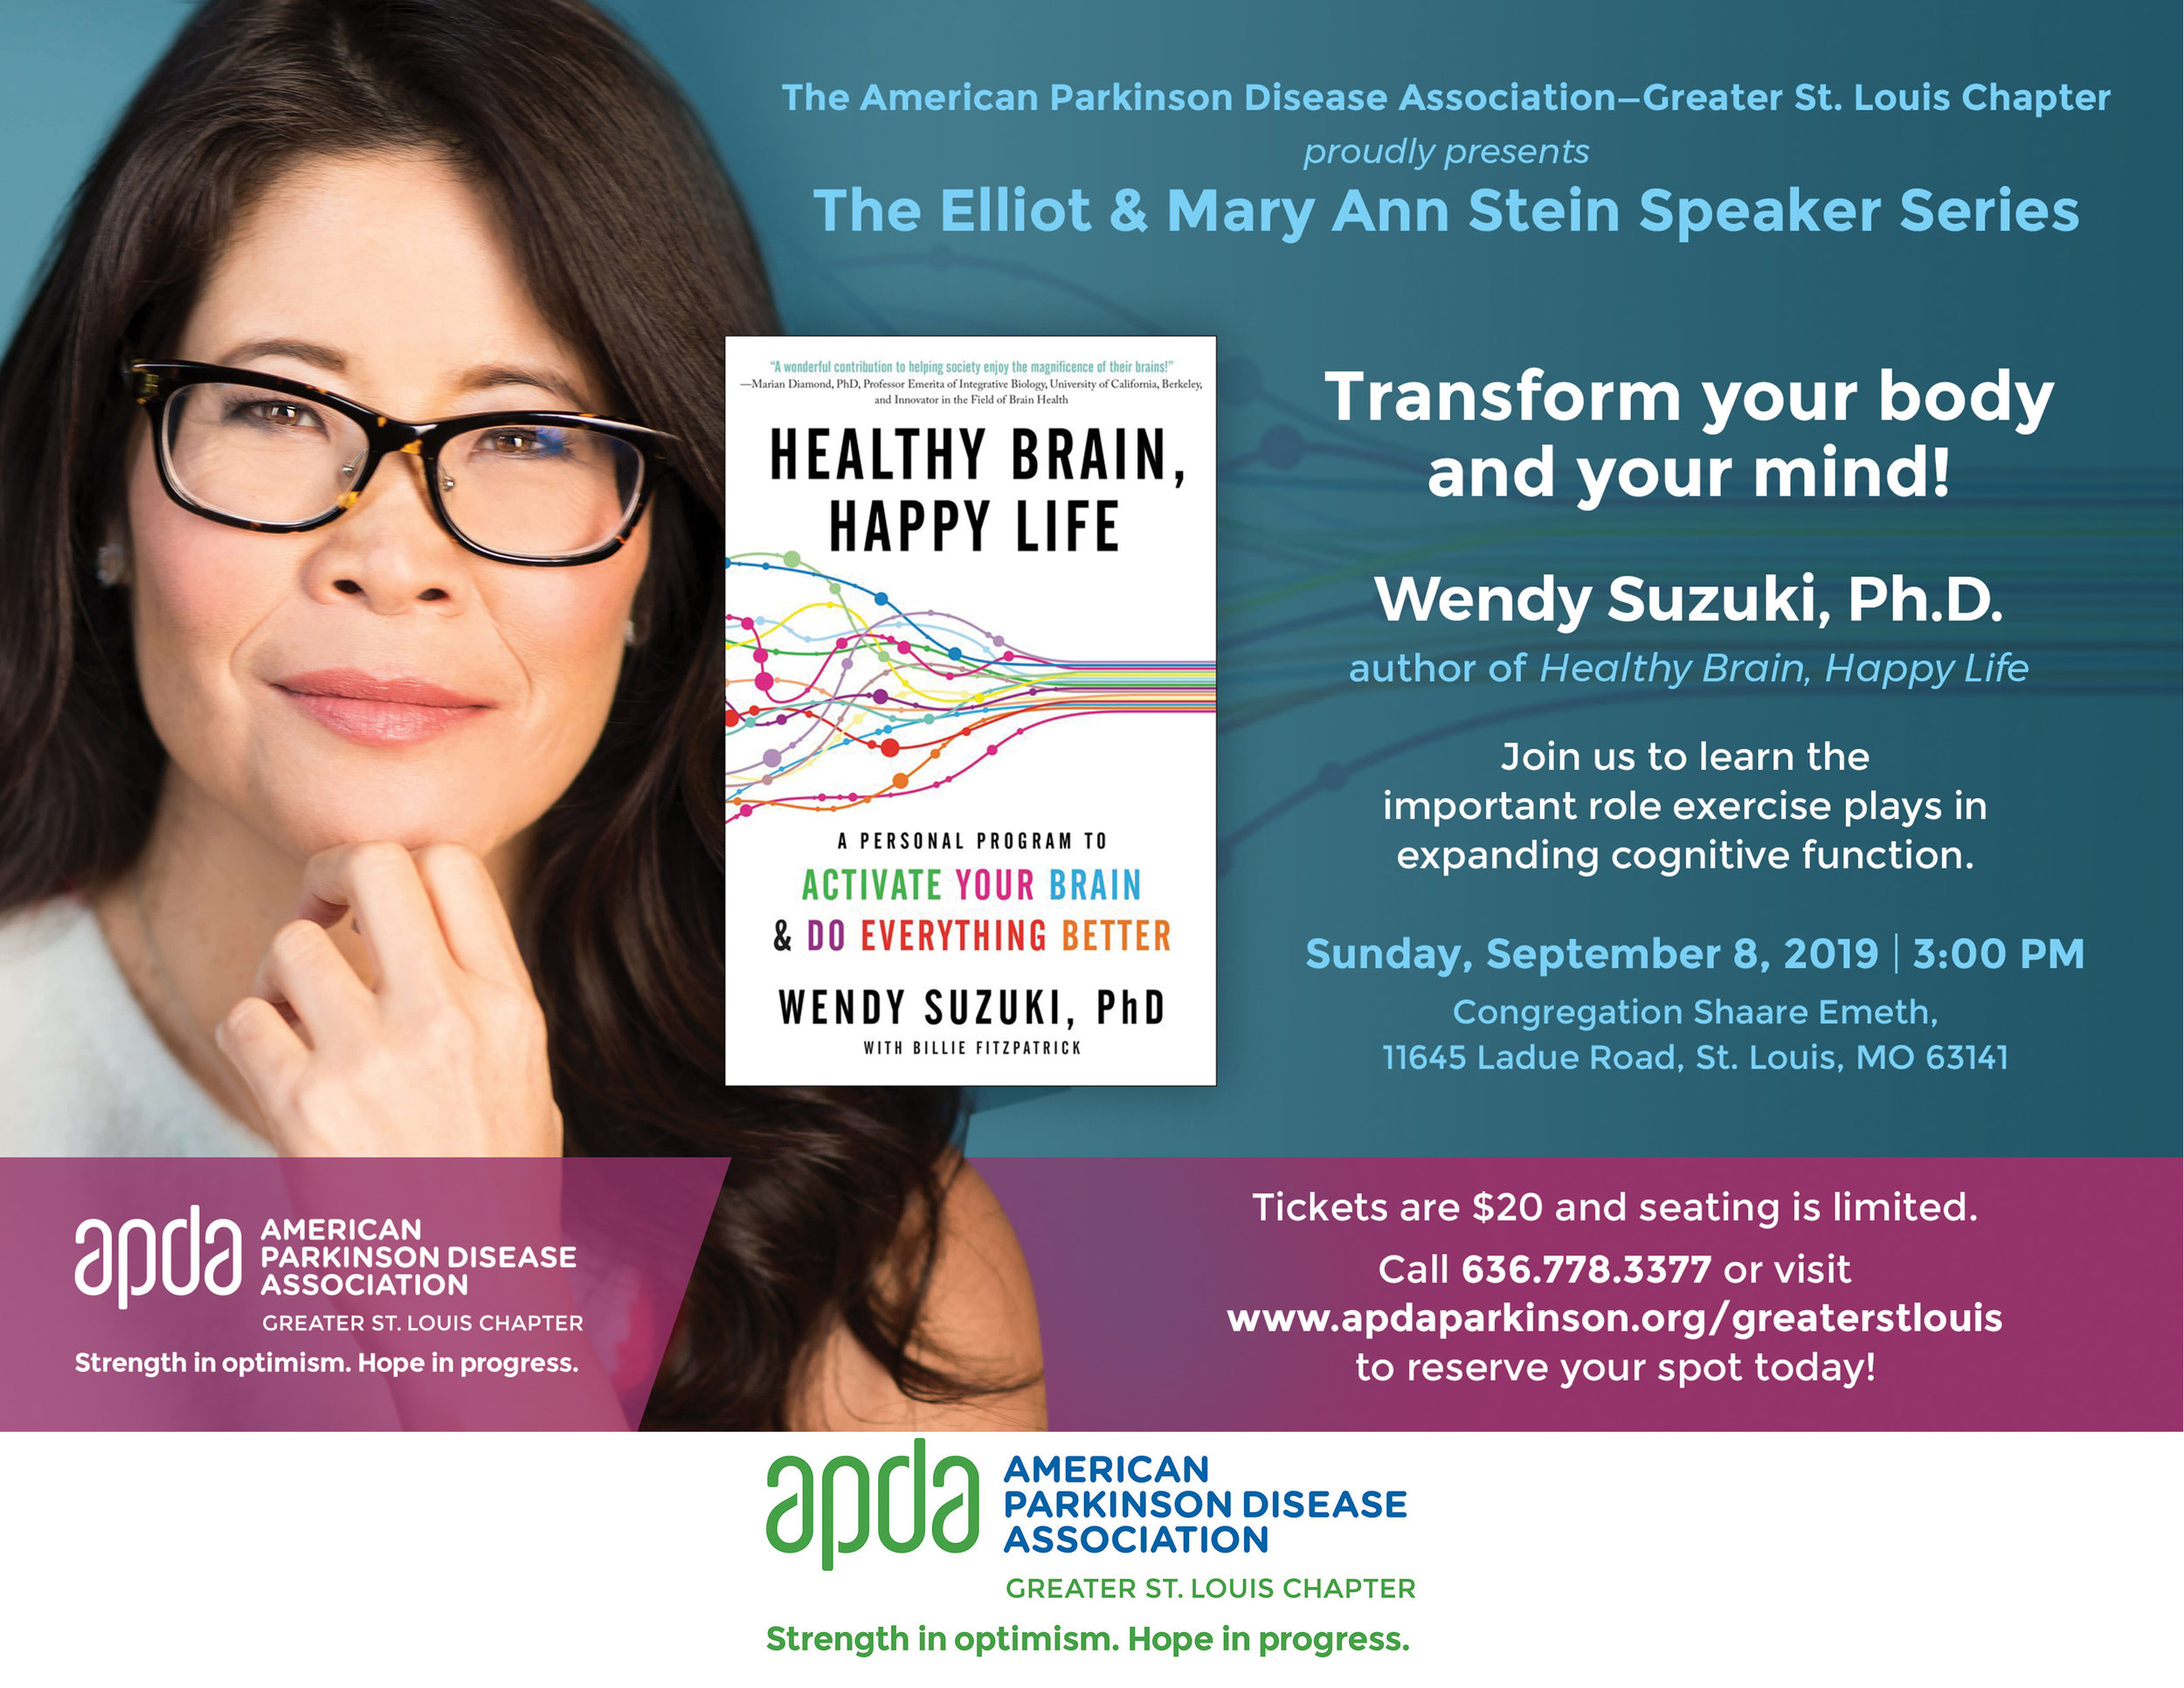 Wendy Suzuki Flyer.jpg